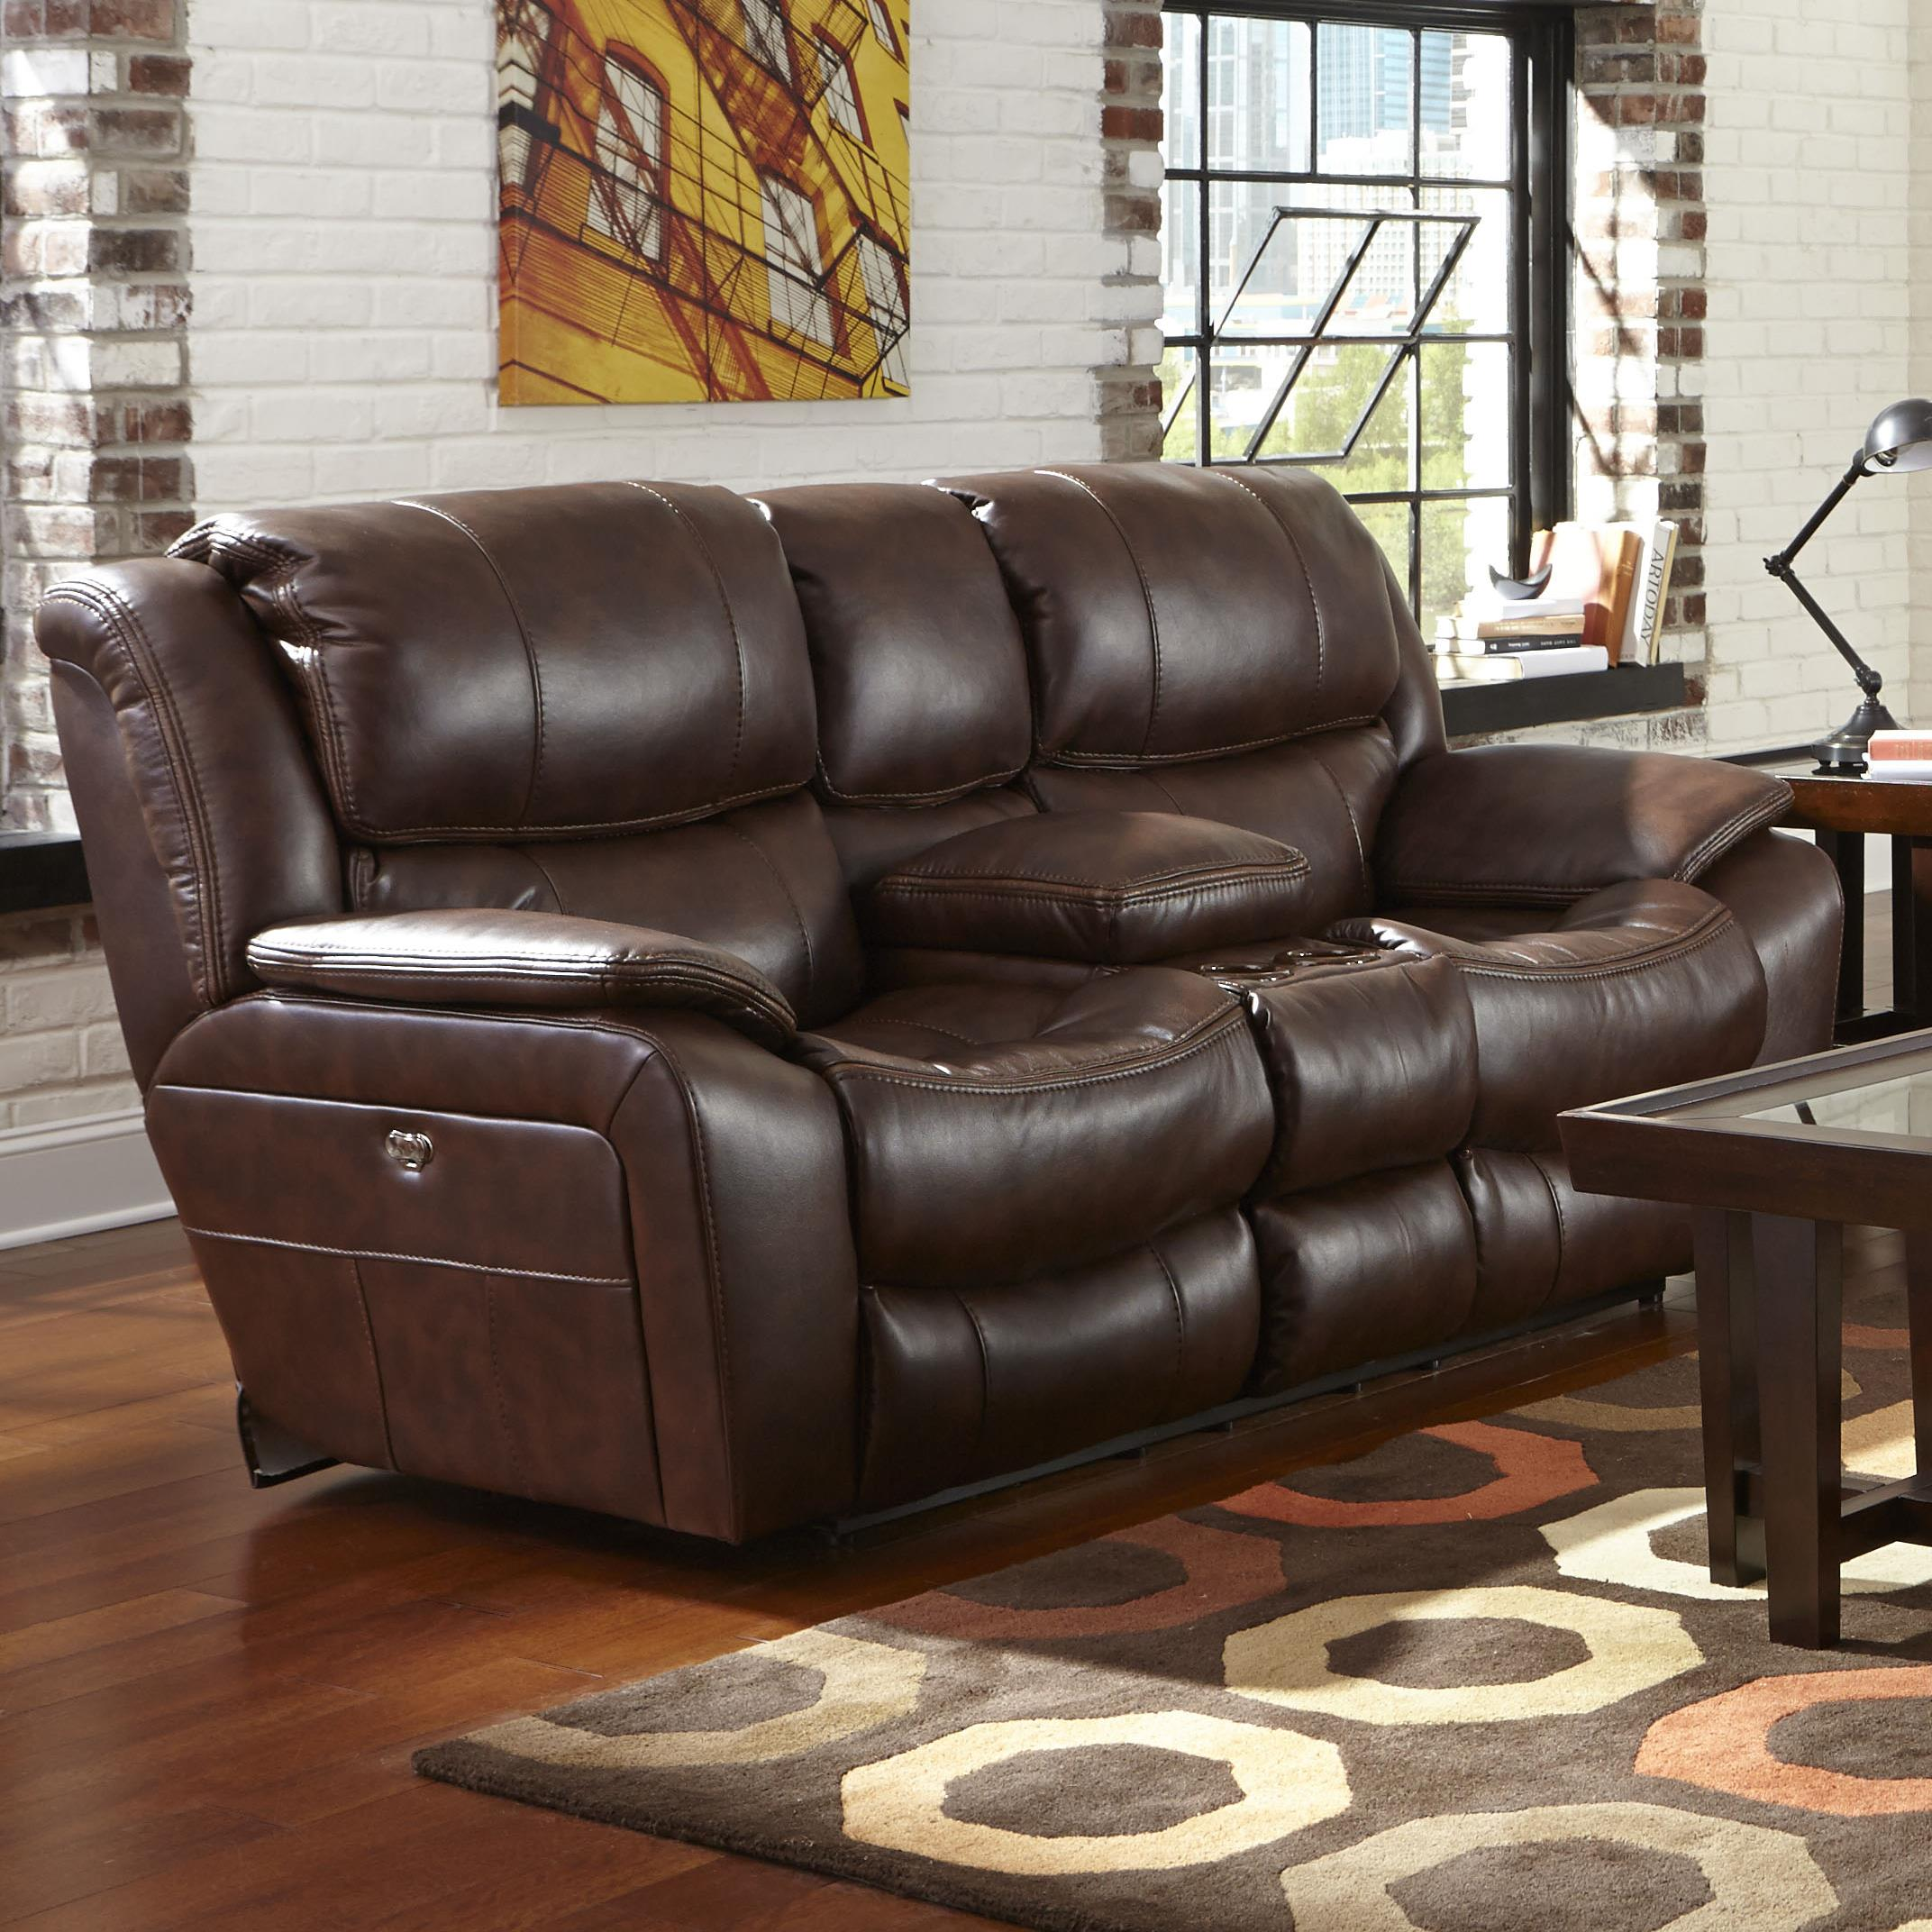 Catnapper beckett reclining loveseat with usb port cup holders and storage console knight Catnapper loveseat recliner